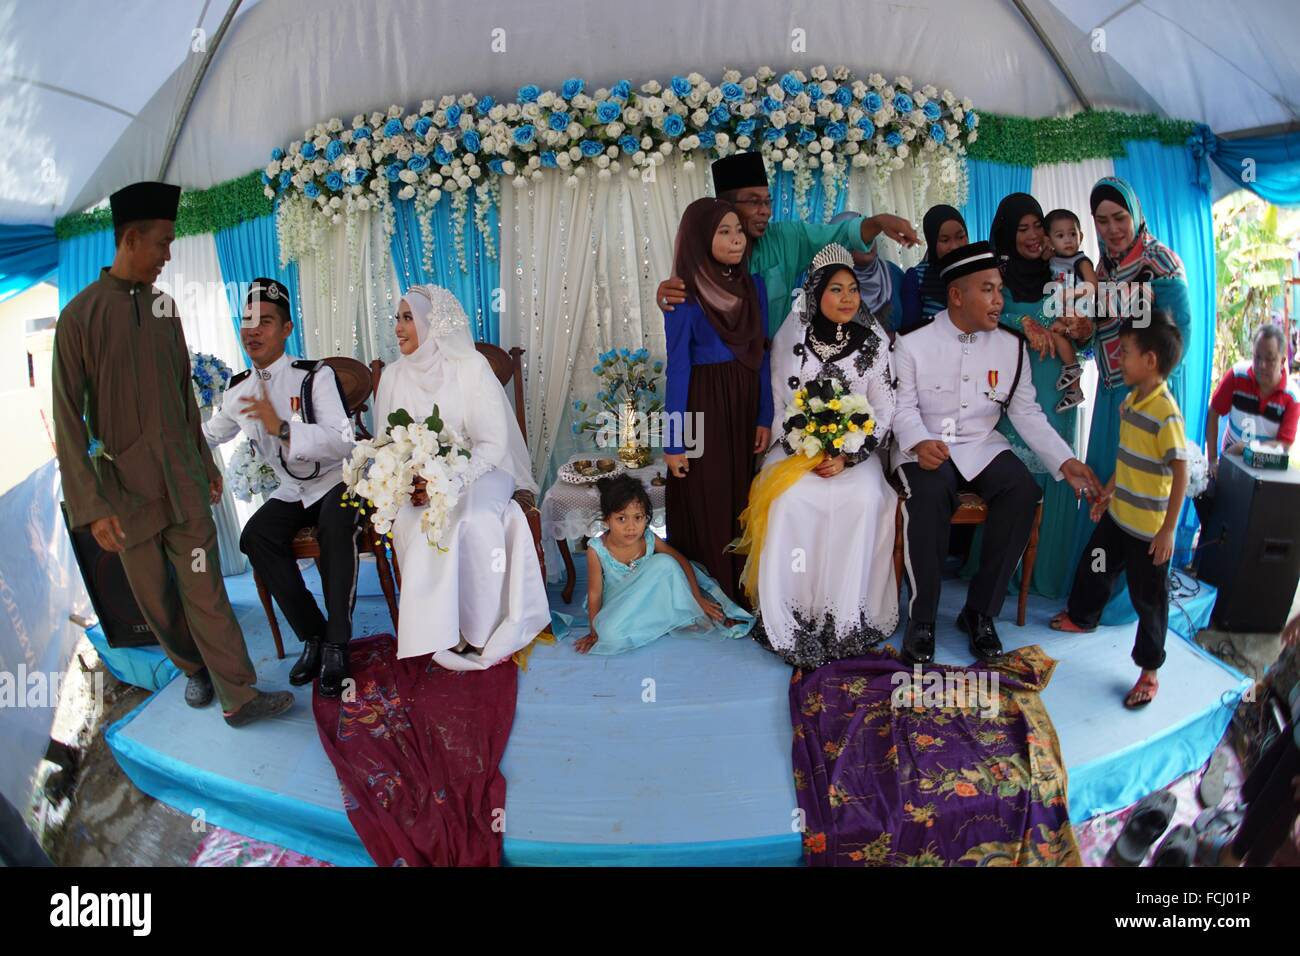 Two malay weddings among the cousins in kuching sarawak malaysia two malay weddings among the cousins in kuching sarawak malaysia junglespirit Image collections